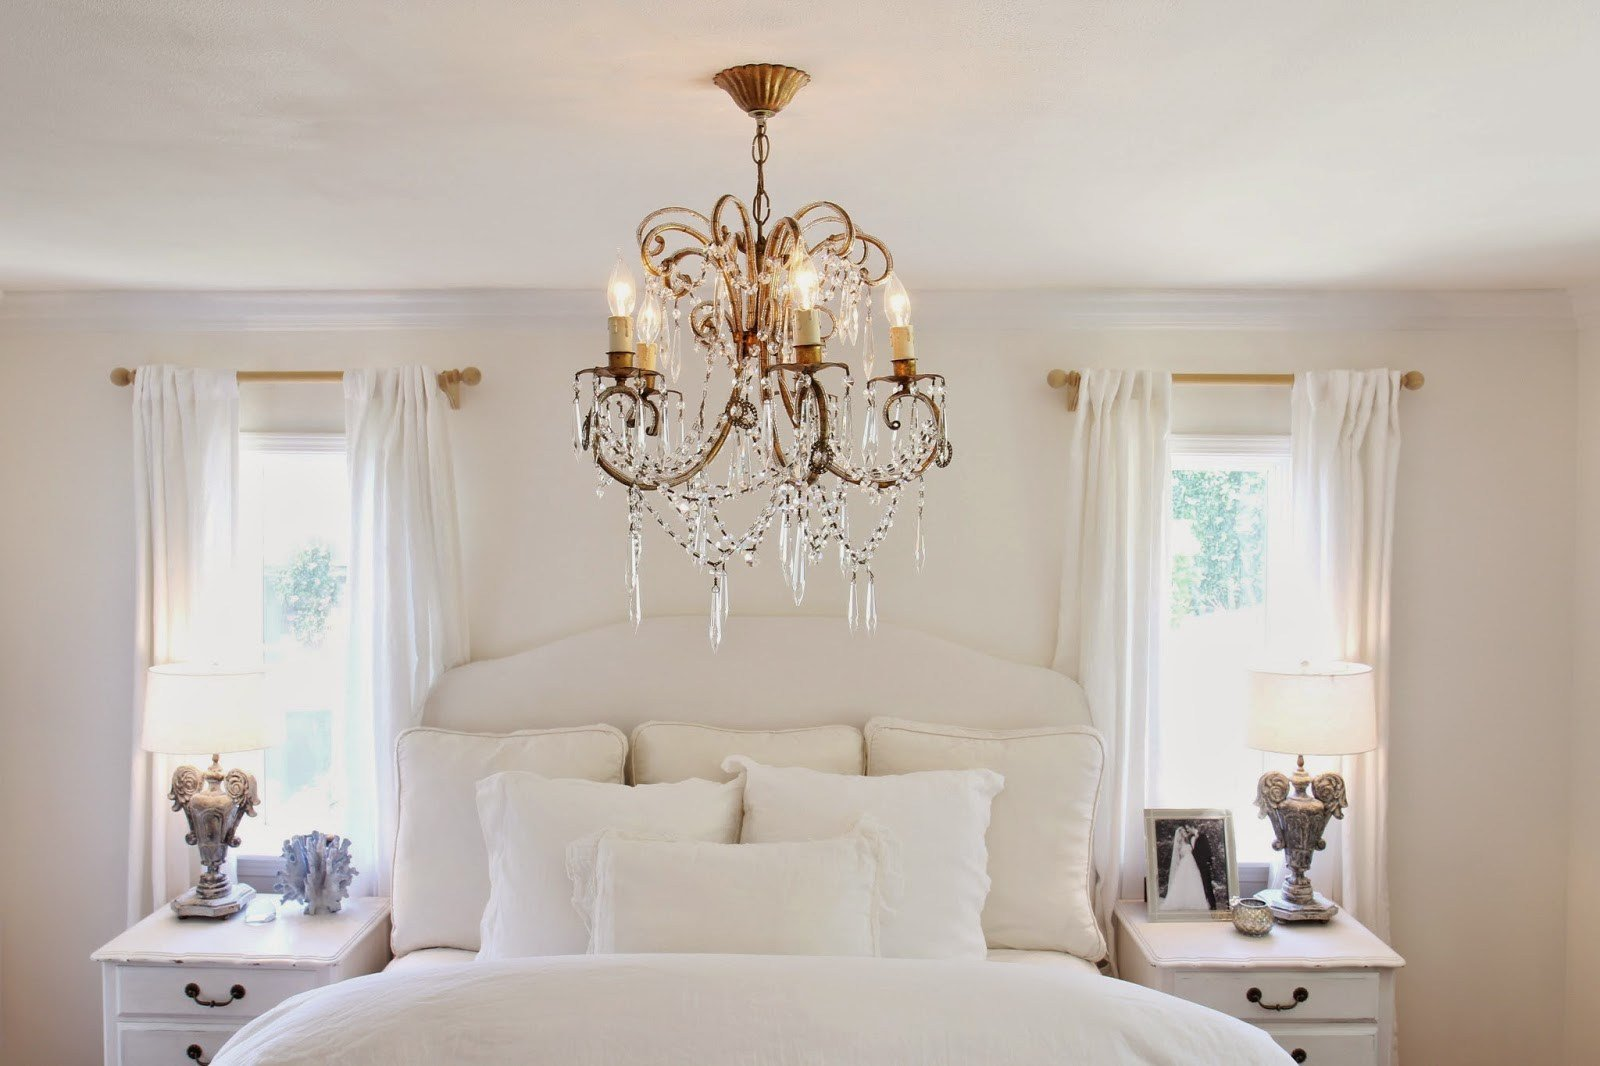 Best Inexpensive Chandeliers For Bedroom Simple Crystal With Pictures